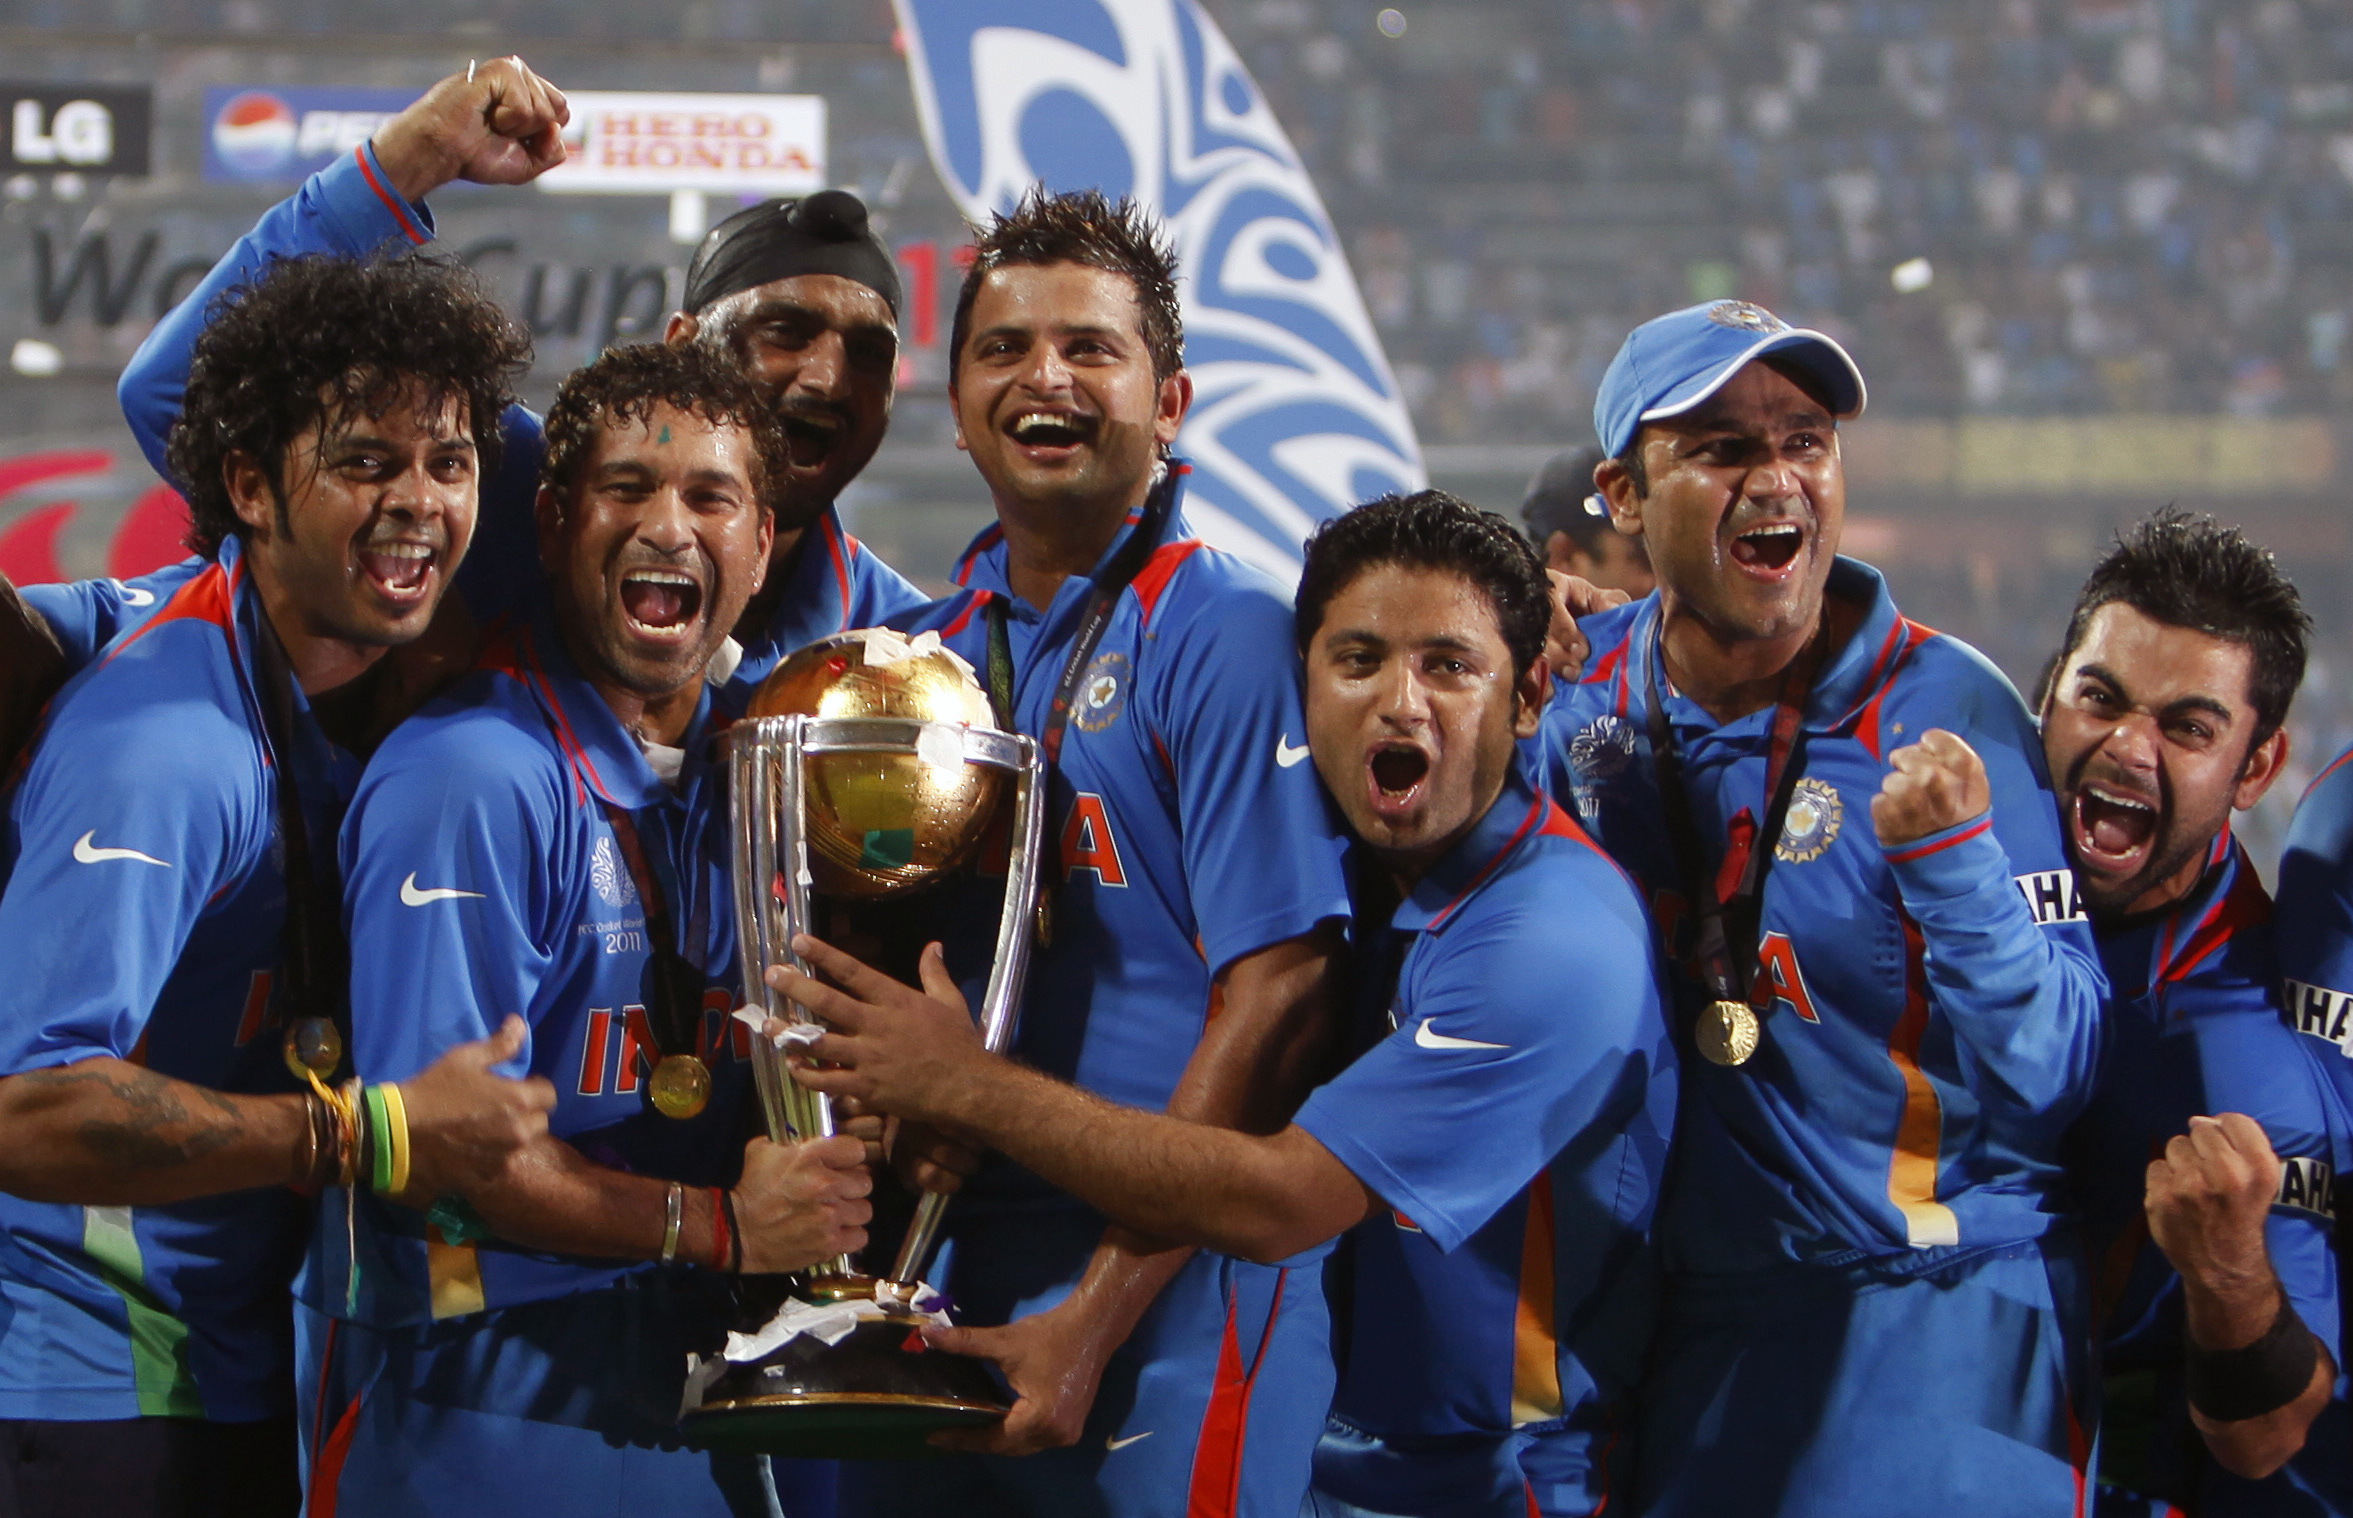 FILE - In this Saturday, April 2 , 2011 file photo, India's players celebrate their win with the trophy after the Cricket World Cup final match against Sri Lanka in Mumbai, India. The shock 1983 Cricket World Cup triumph boosted the sport's appeal in Indi